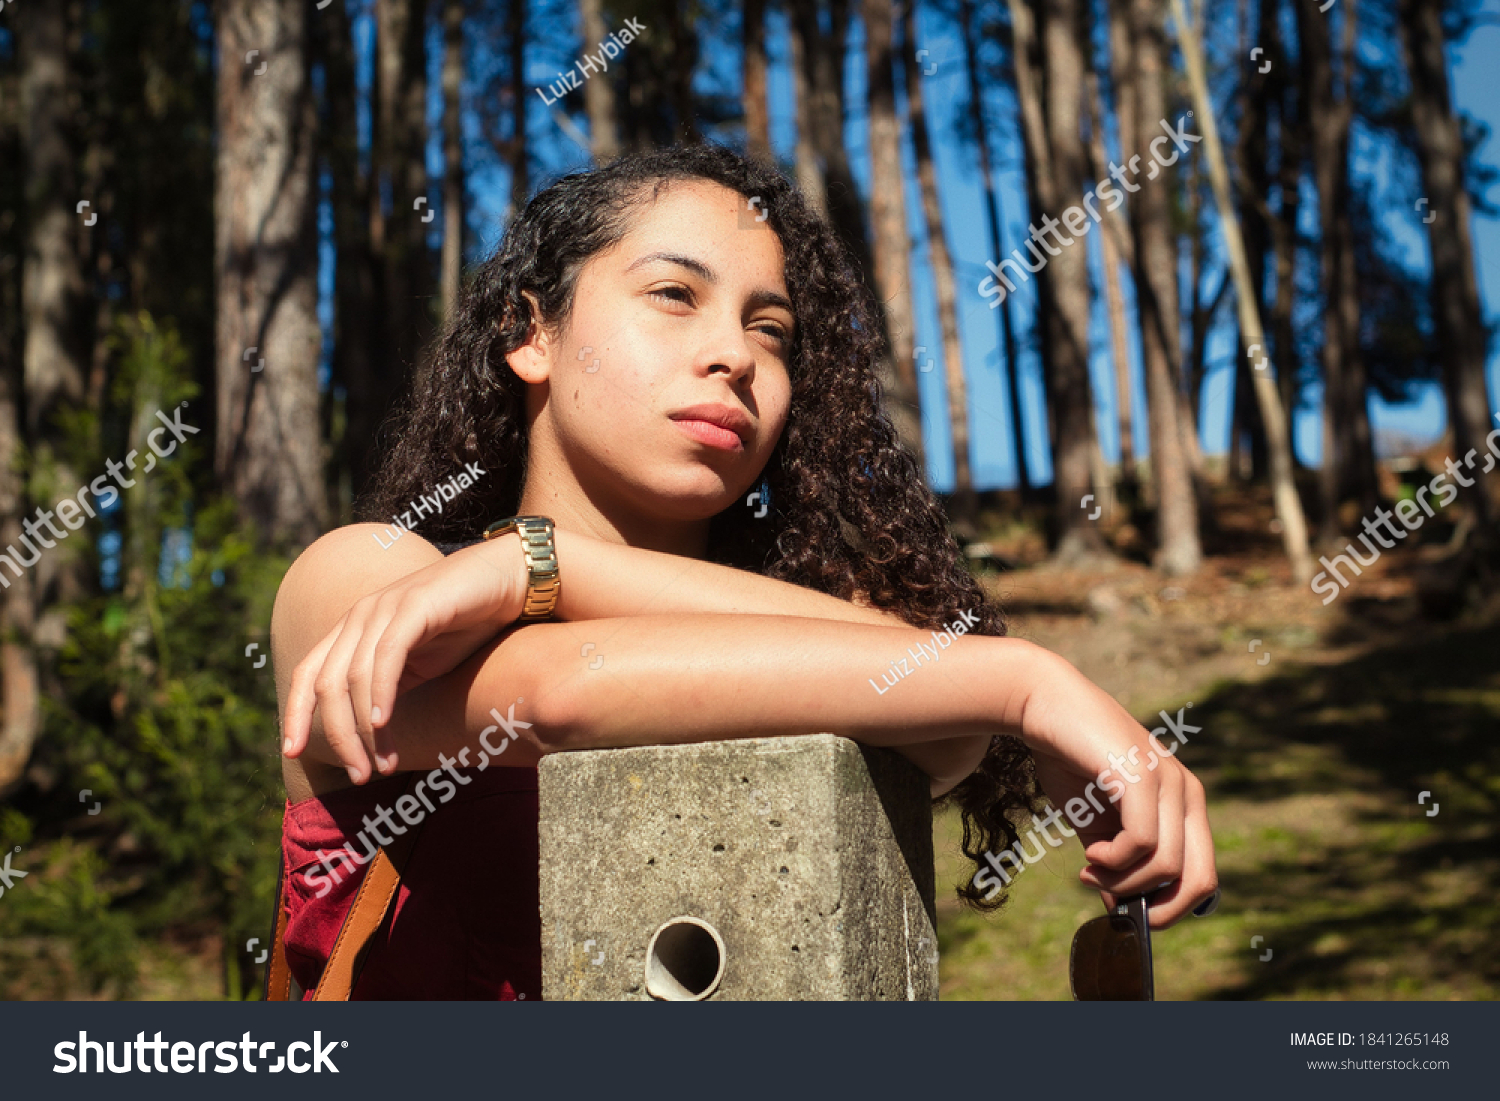 stock-photo-young-adult-woman-with-curly